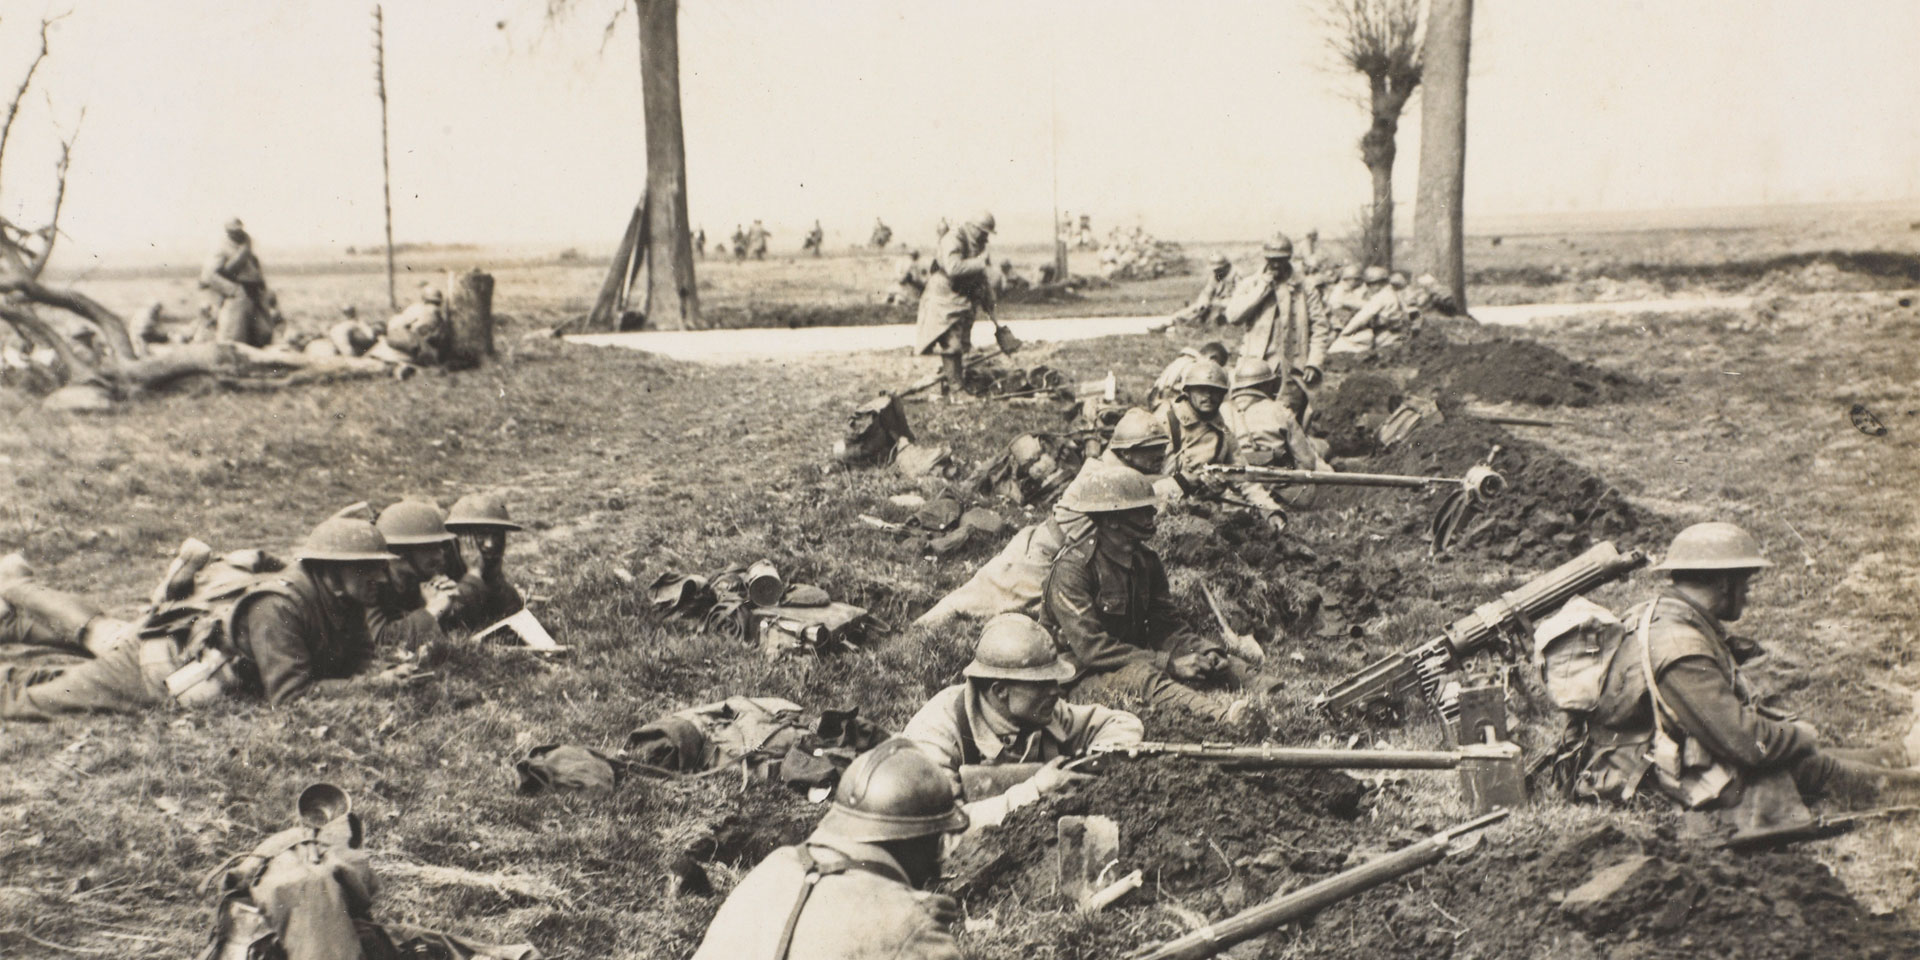 'The German offensive. British and French alongside each other waiting for the Boches', 1918